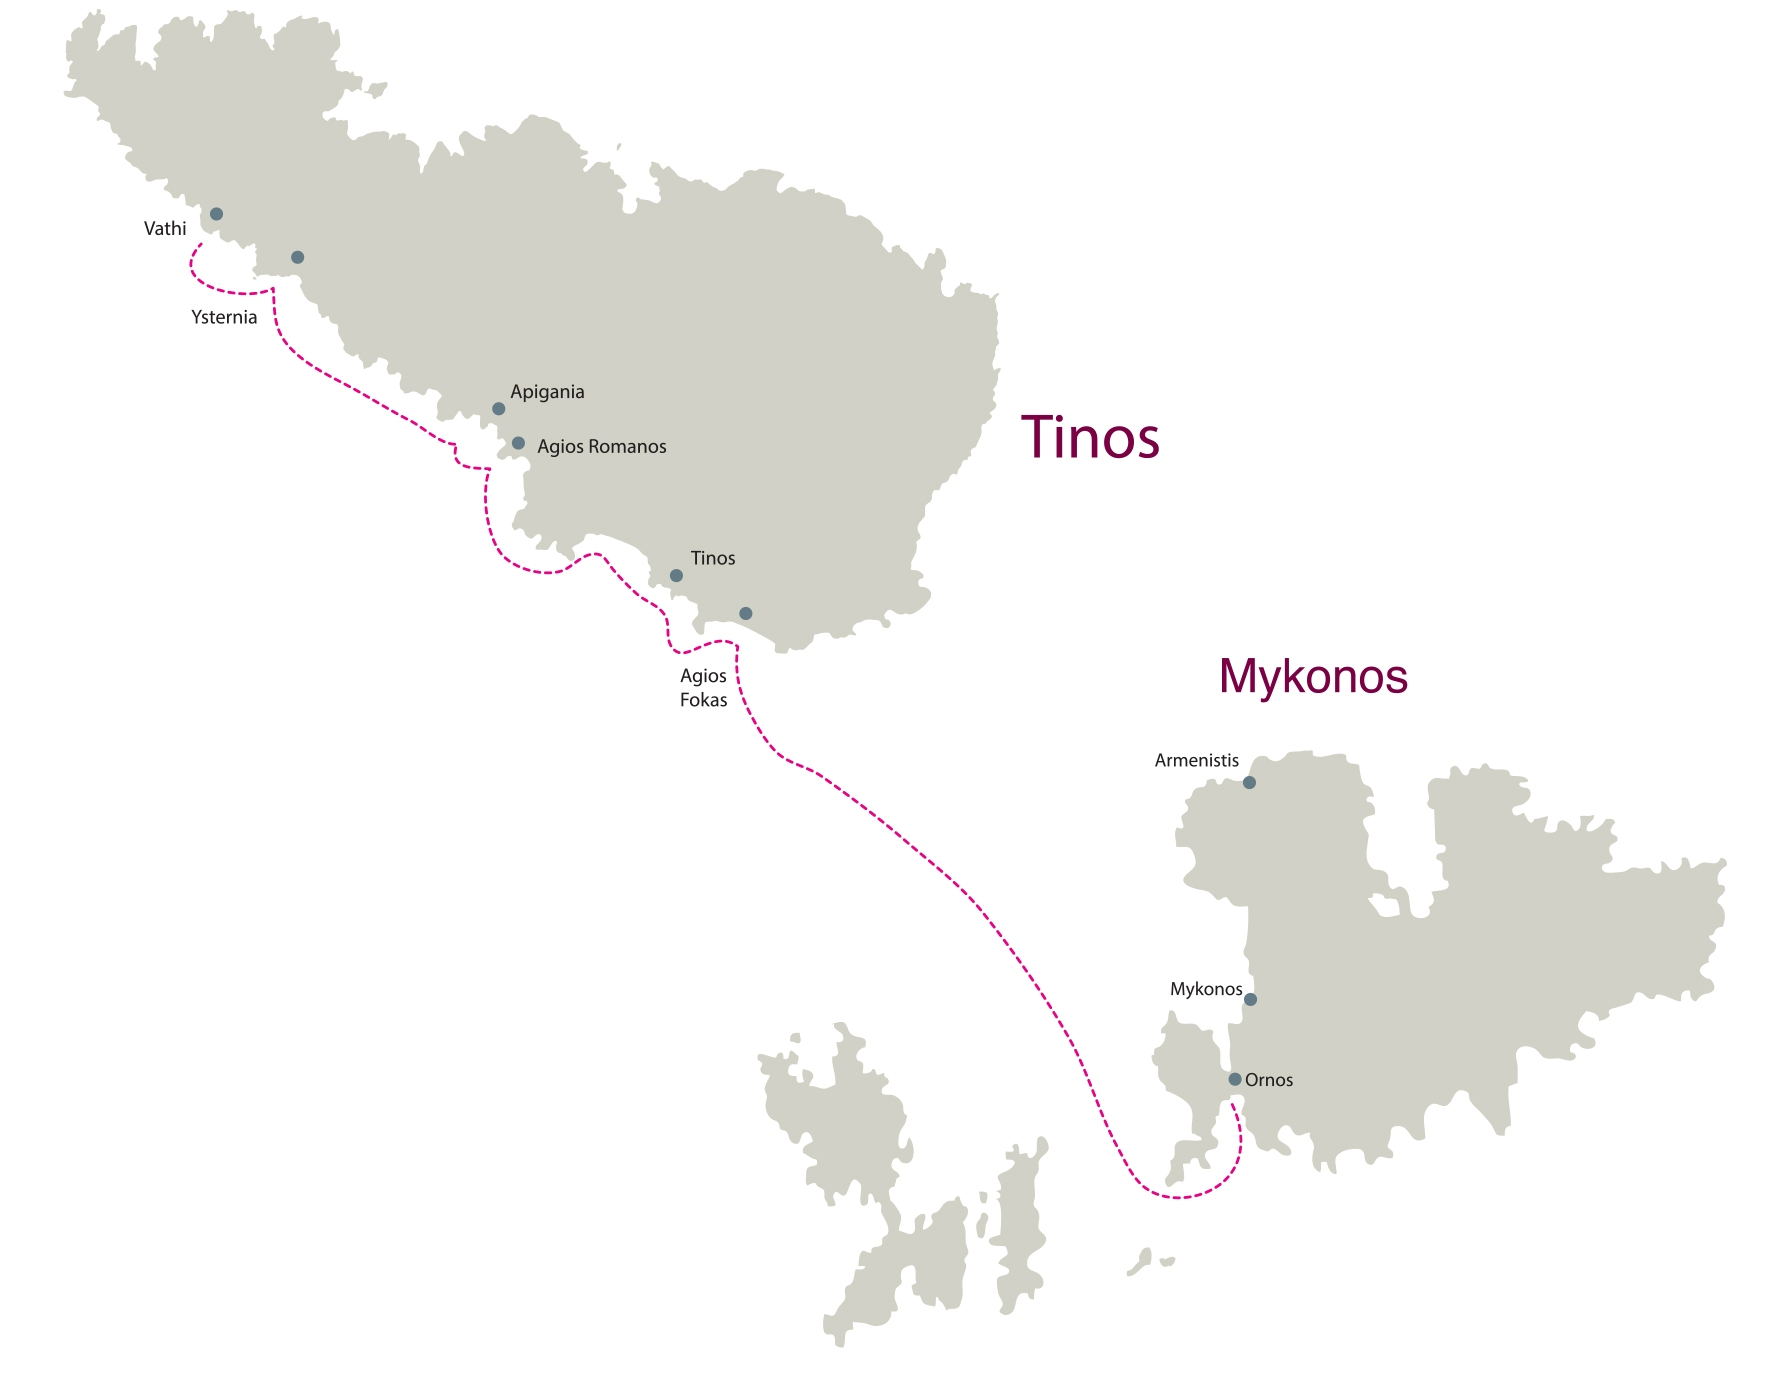 on Blue Yacthing - Private Cruise - Mykonos Tinos Route